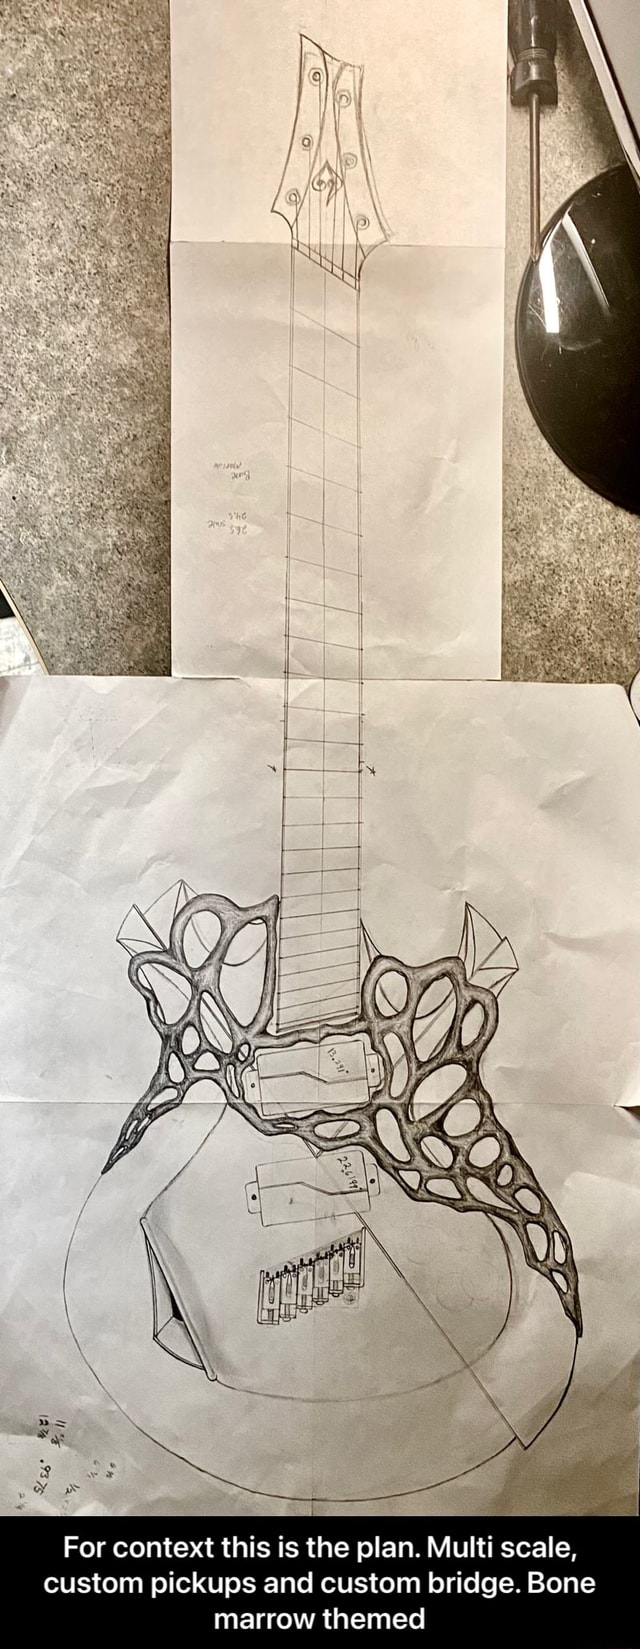 For context this is the plan. Multi scale, custom pickups and custom bridge. Bone marrow themed  For context this is the plan. Multi scale, custom pickups and custom bridge. Bone marrow themed meme